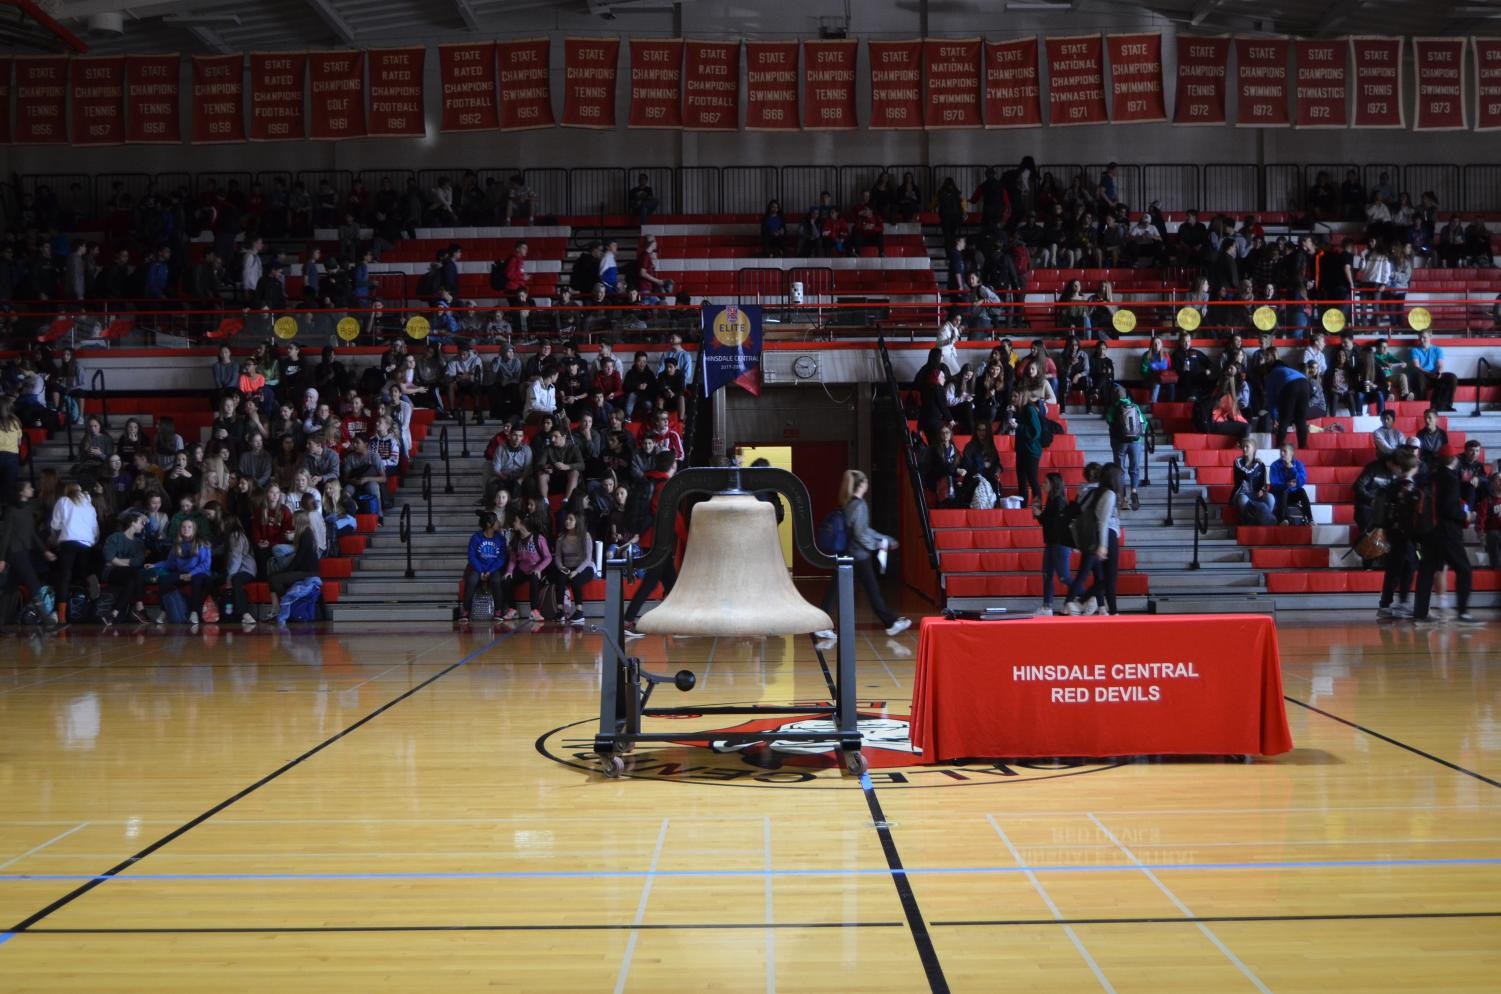 The school's new victory bell was fully on display for the Fall Recognition Ceremony in the gym, but it will later be moved to its own platform outside.